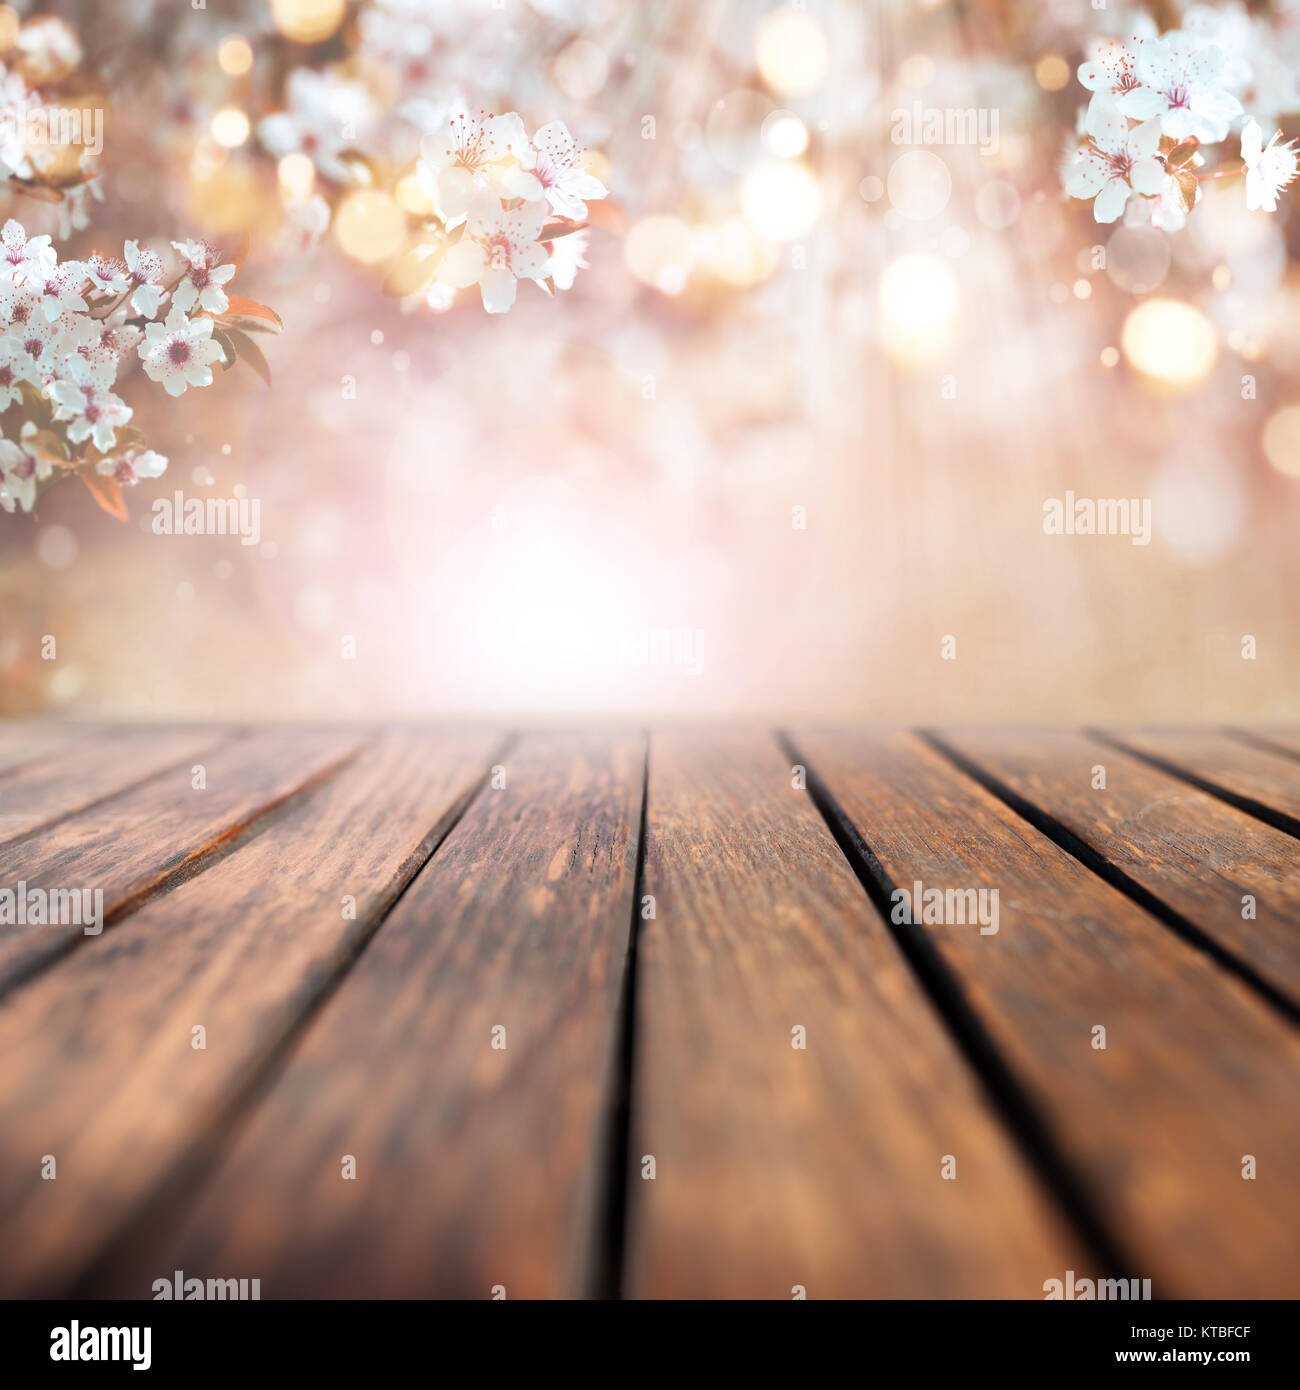 Cherry blossoms in spring with sunrays and bokeh in front of an empty wooden table for a concept Stock Photo